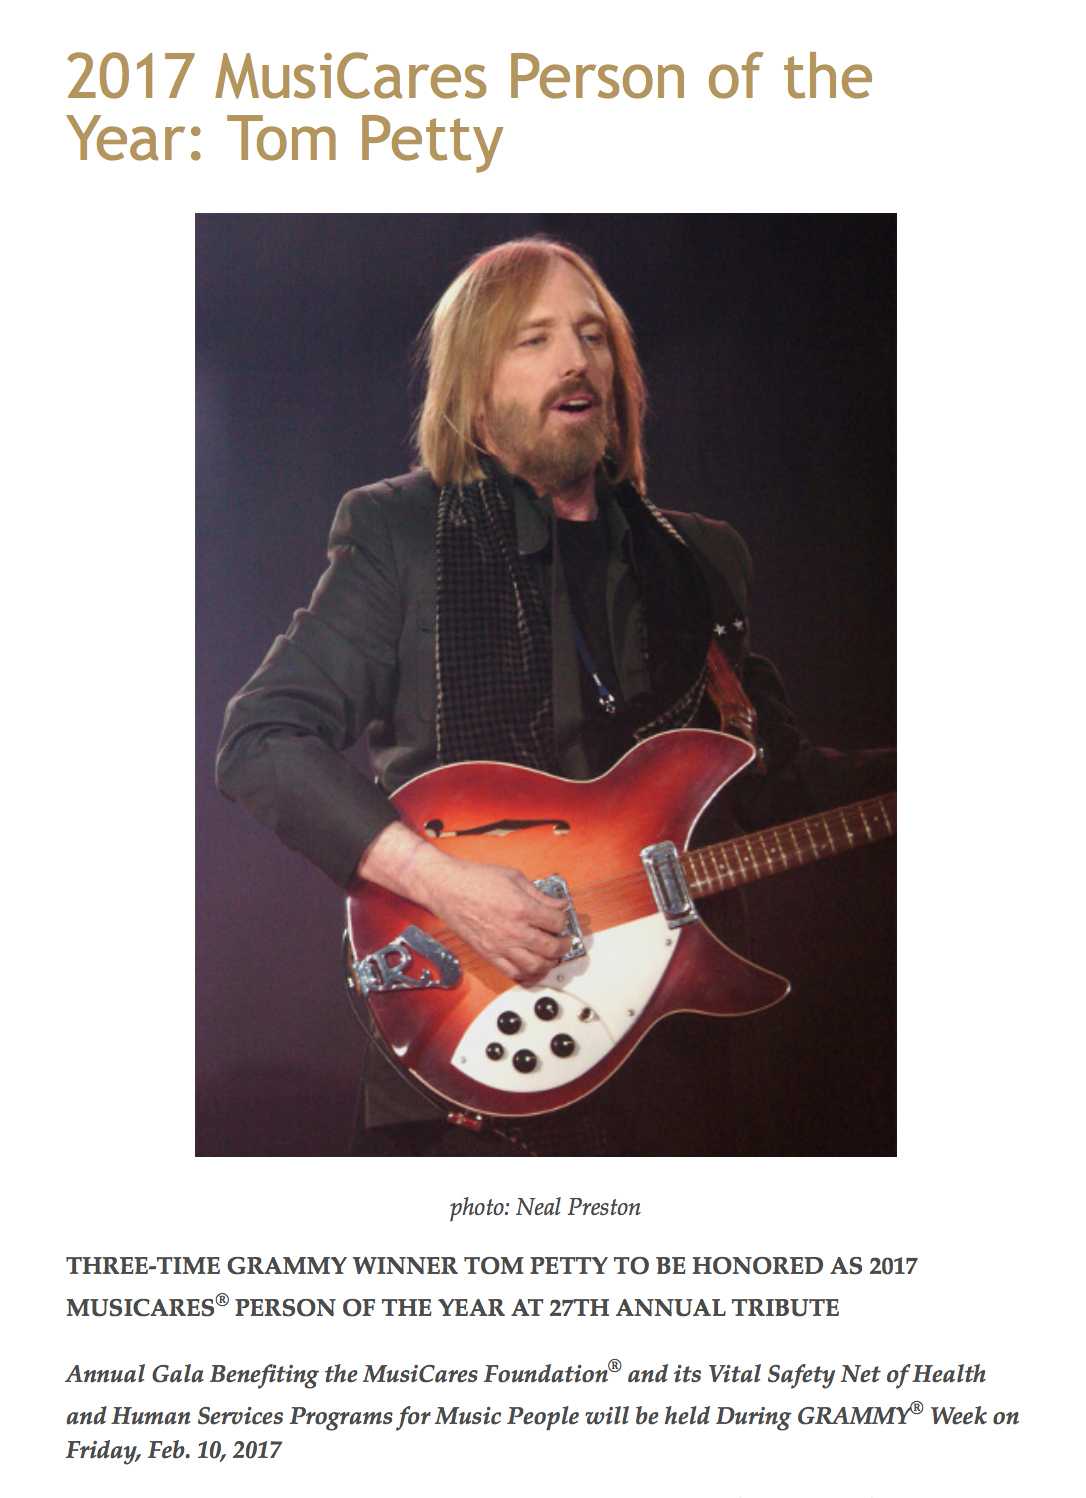 2017 MusiCares Person Of The Year Tom Petty Flyer.jpg